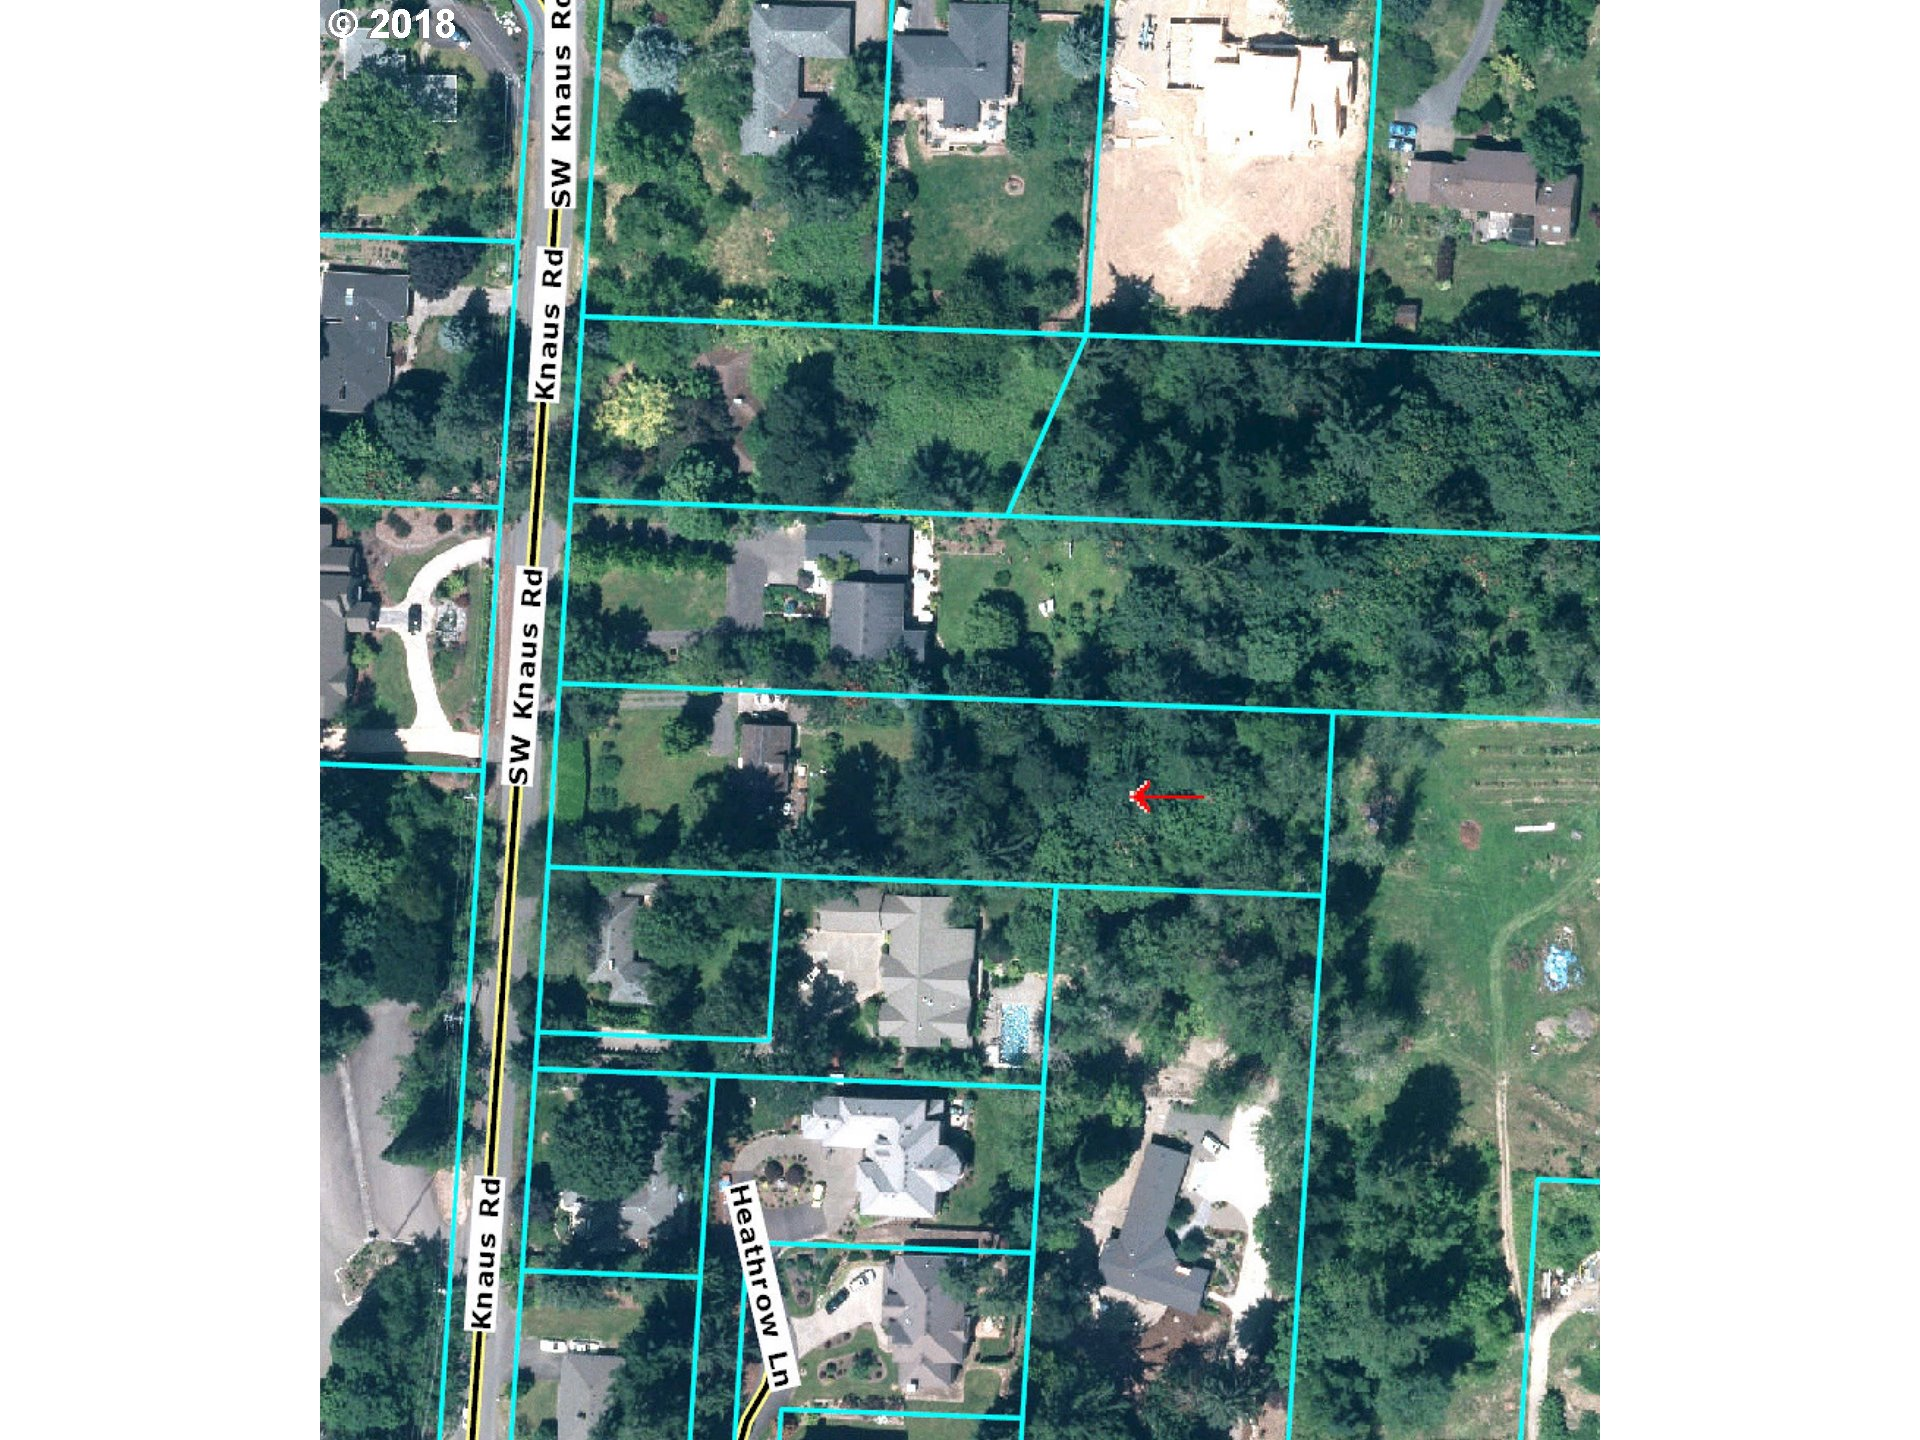 13962 KNAUS RD Lake Oswego, OR 97034 - MLS #: 18694710